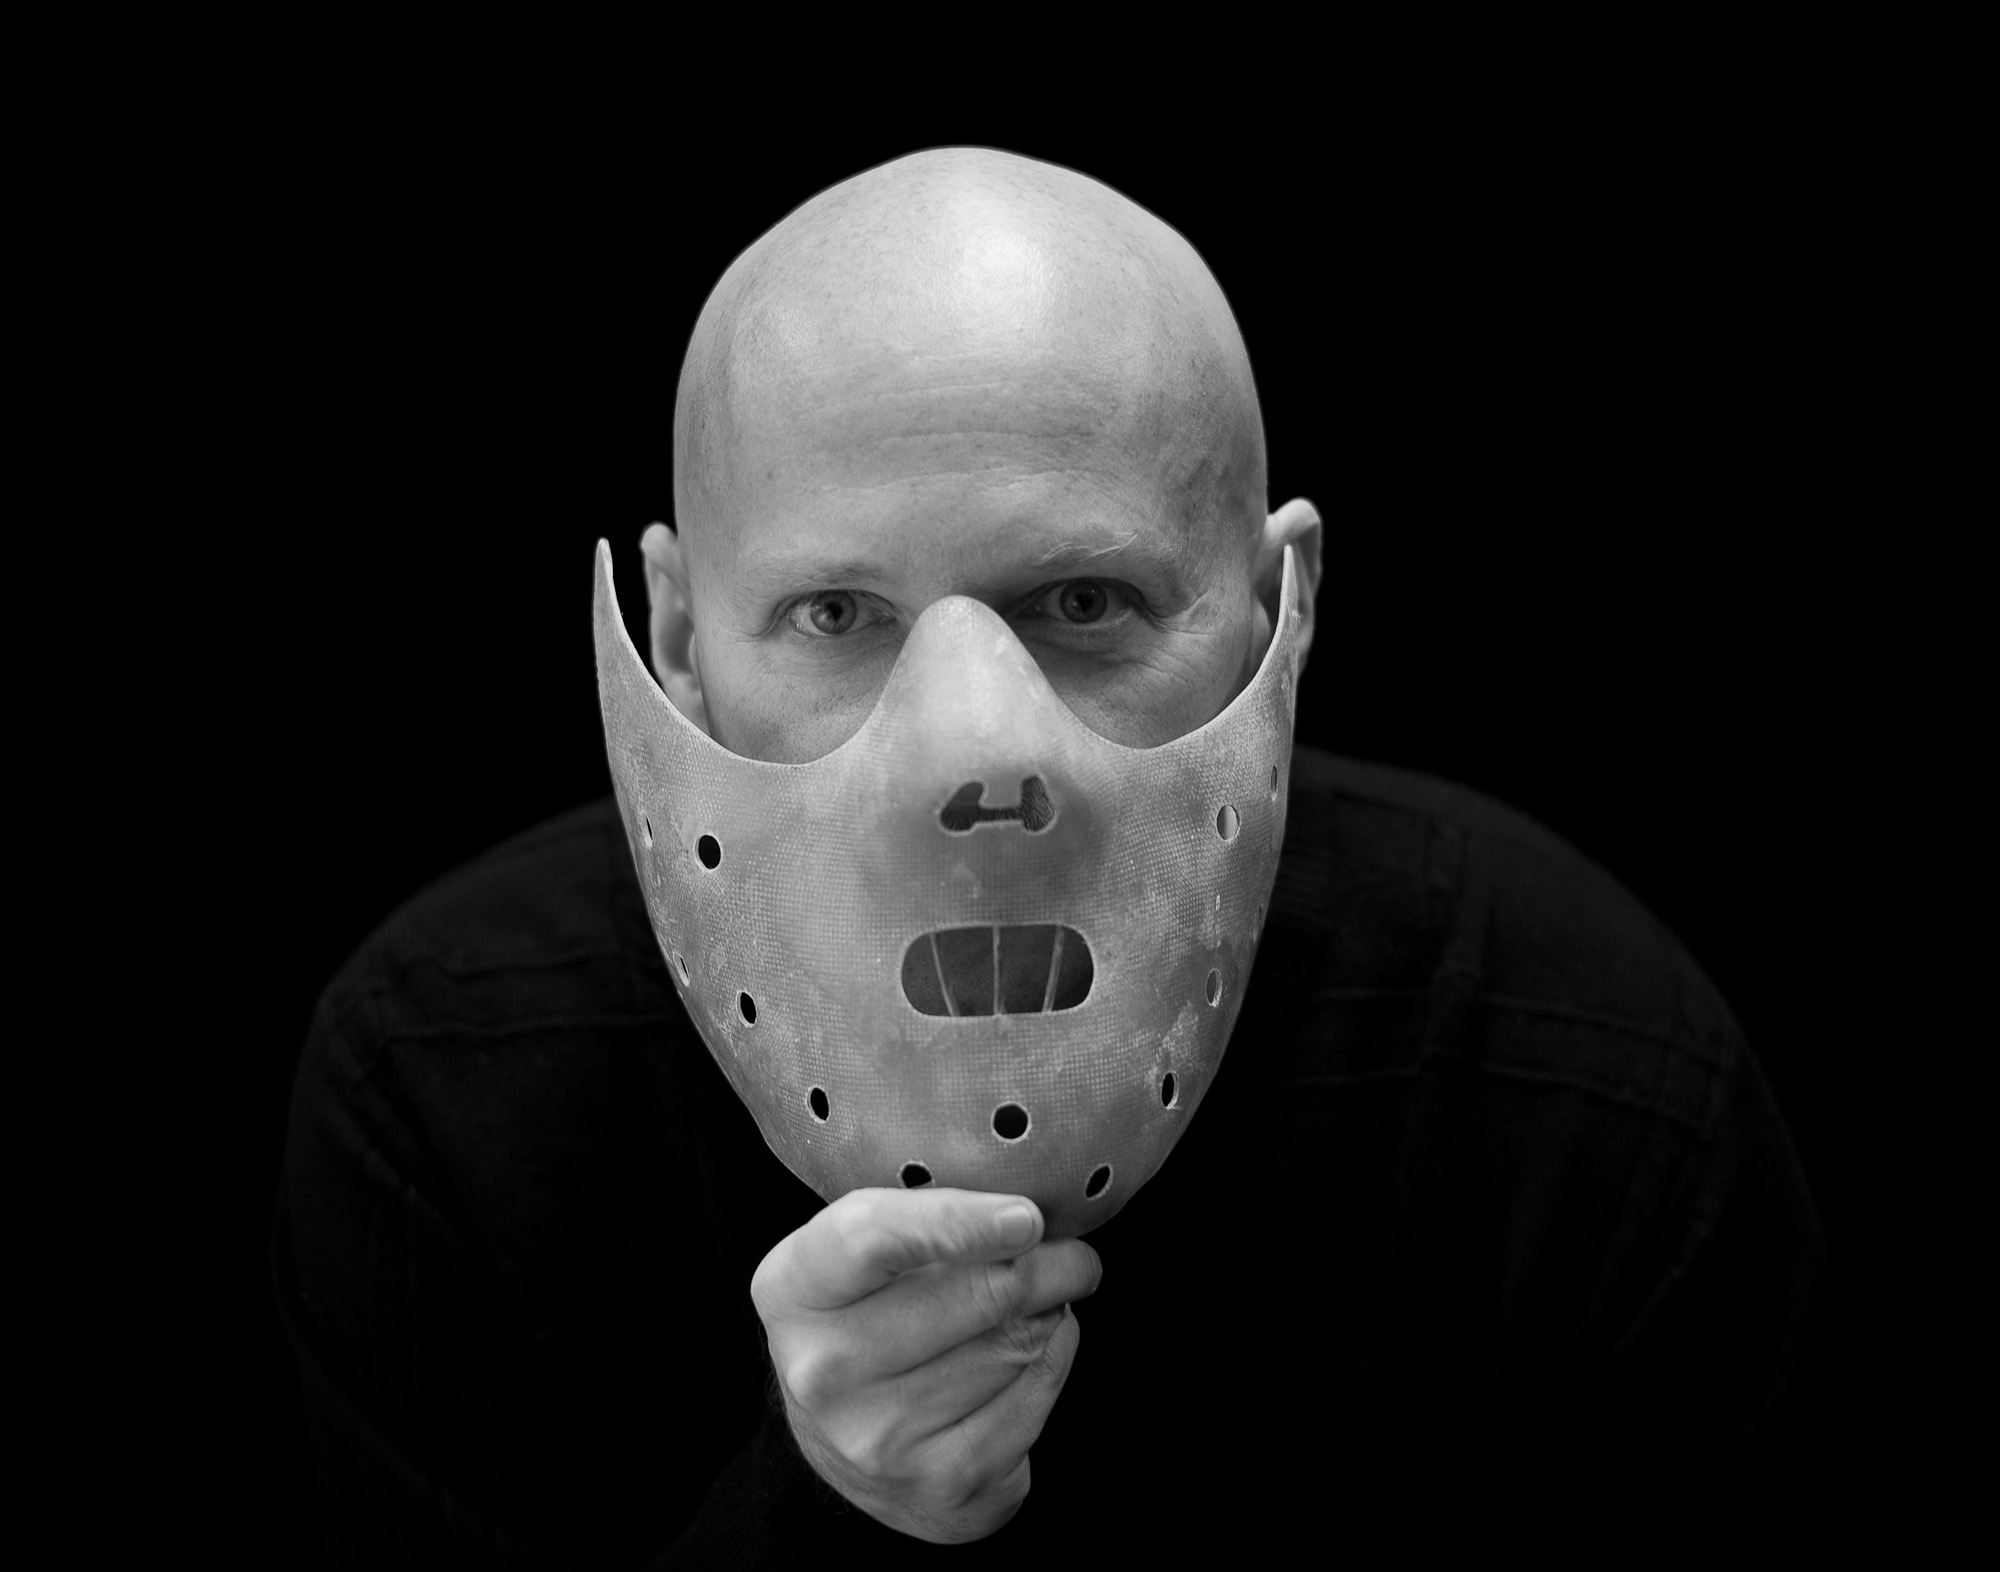 Ed Cubberly is a part-rime artist known for creating the Hannibal Lecter mask in {quote}The Silence of the Lambs{quote} and the goalie mask worn by NY Ranger Mike Richter, among others. Photographed for The Star-Ledger